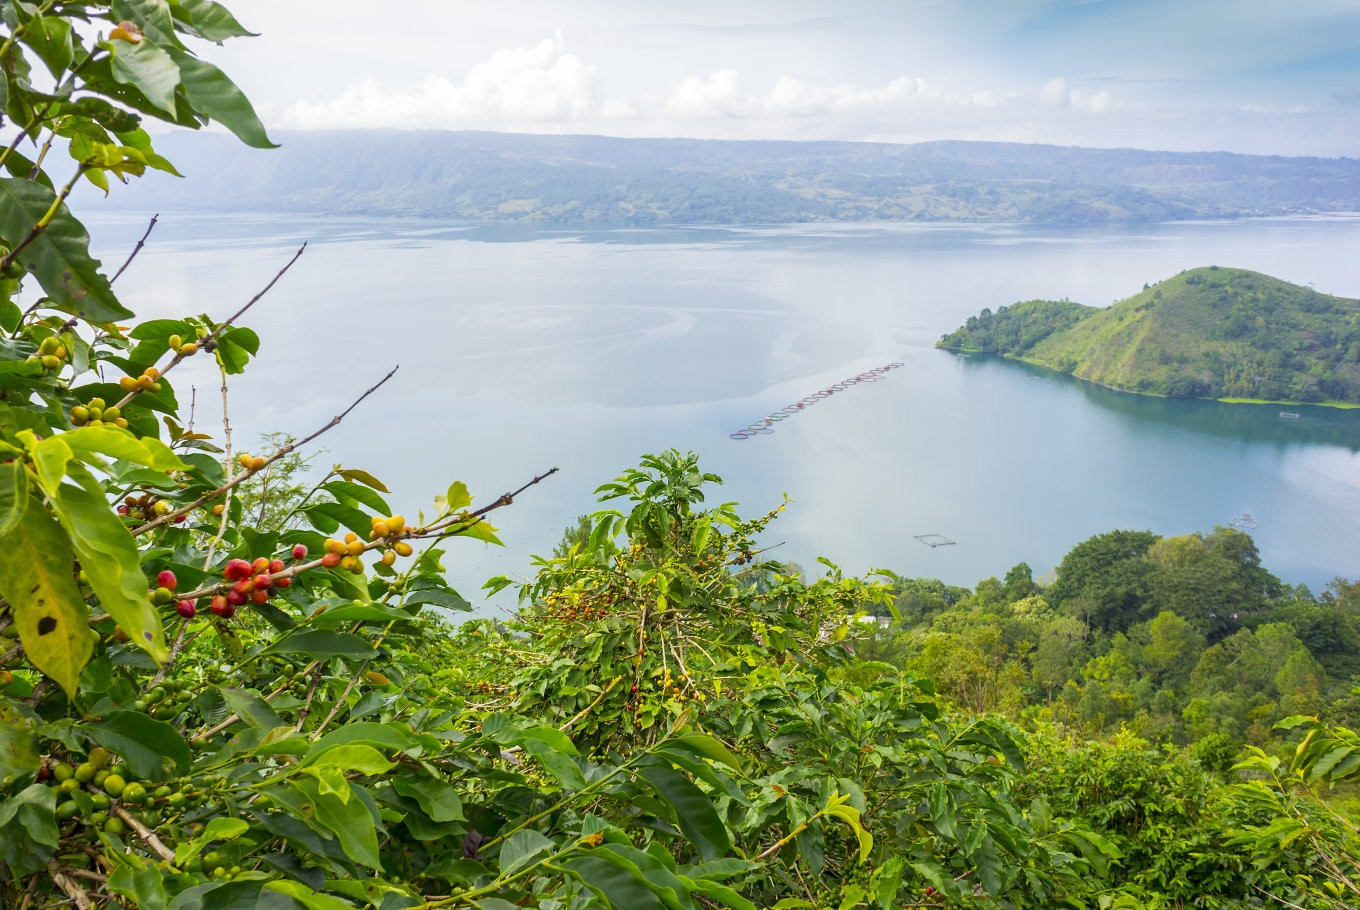 North Sumatra to host coffee festival in Lake Toba